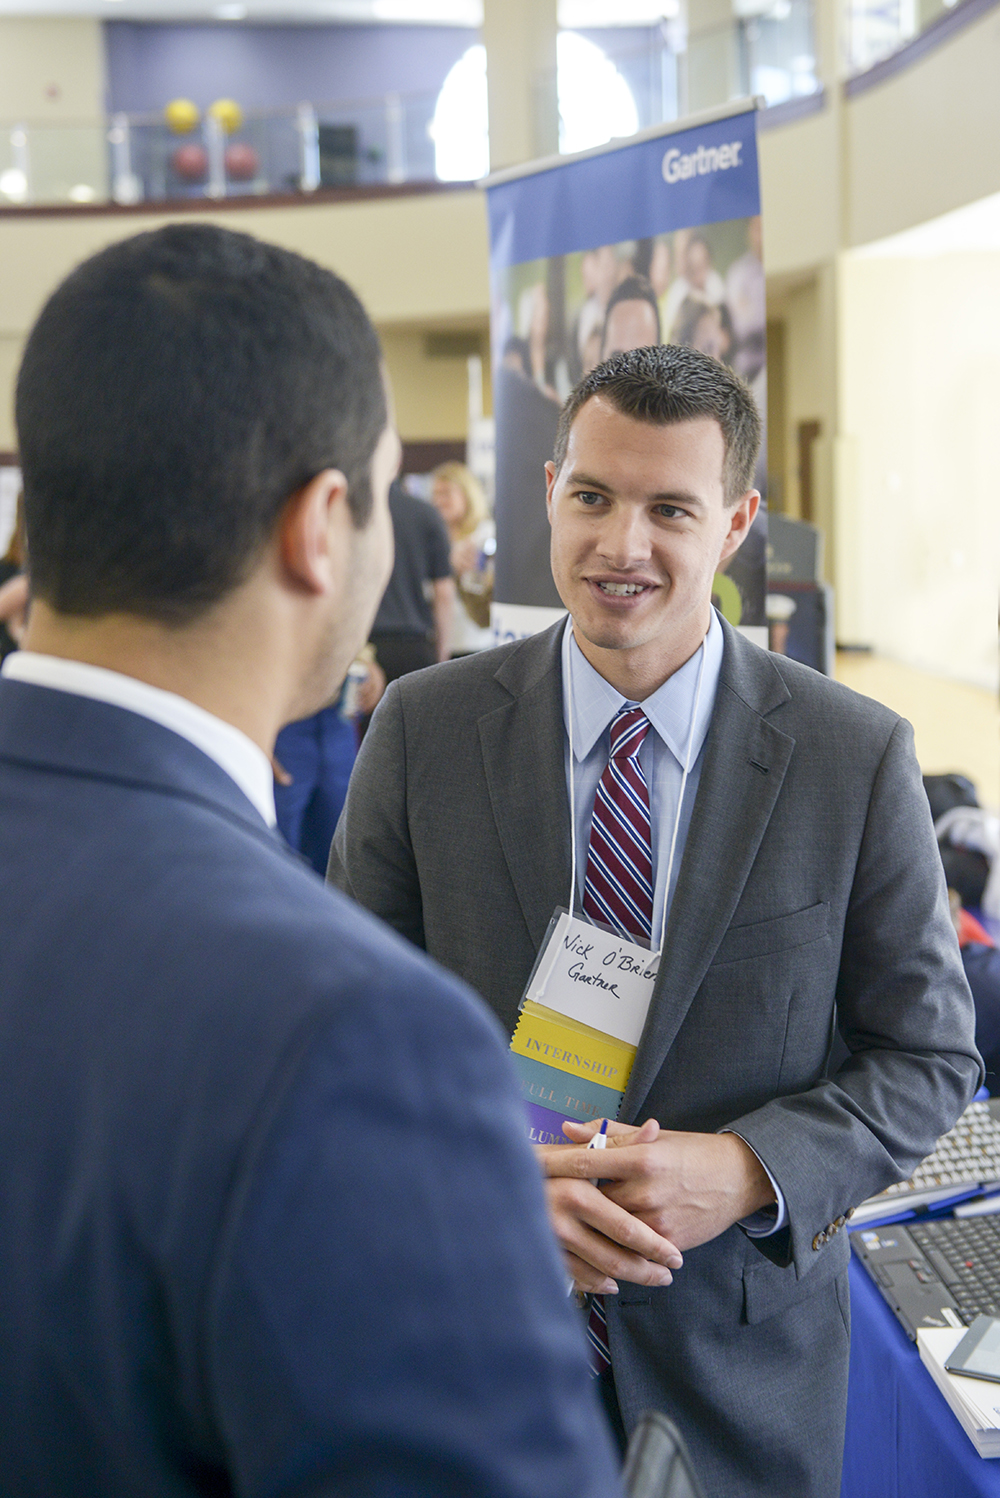 Nick O'Brien, HPU alumnus and account executive at Gartner Consulting, speaks with HPU students at the Career and Internship Expo today.